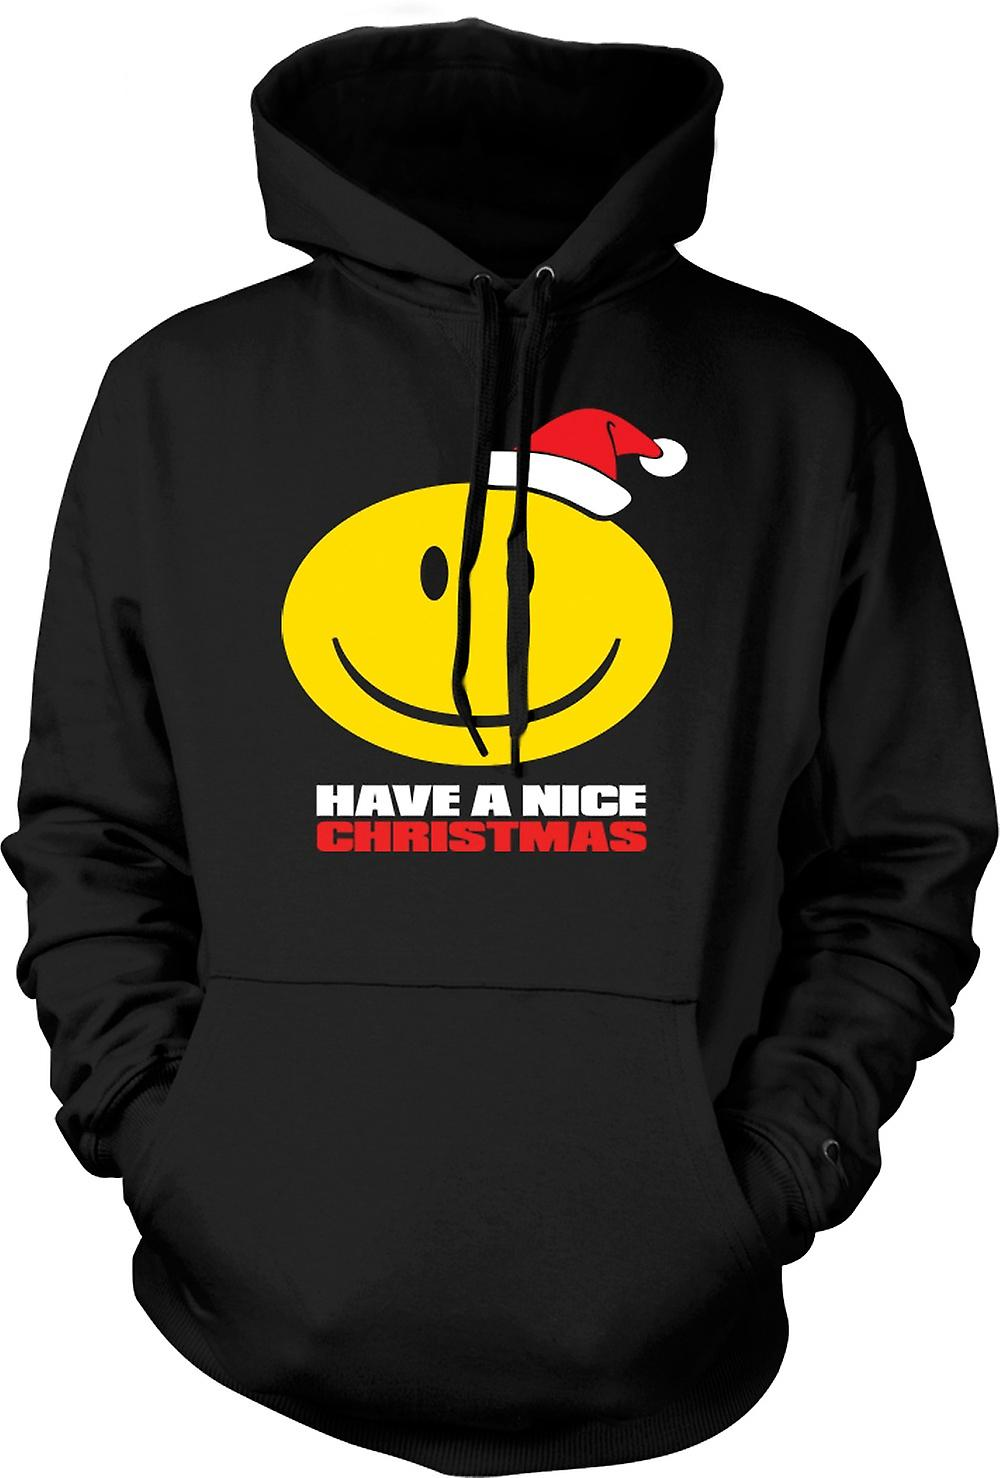 Mens Hoodie - Smiley Face, Have A Nice Christmas